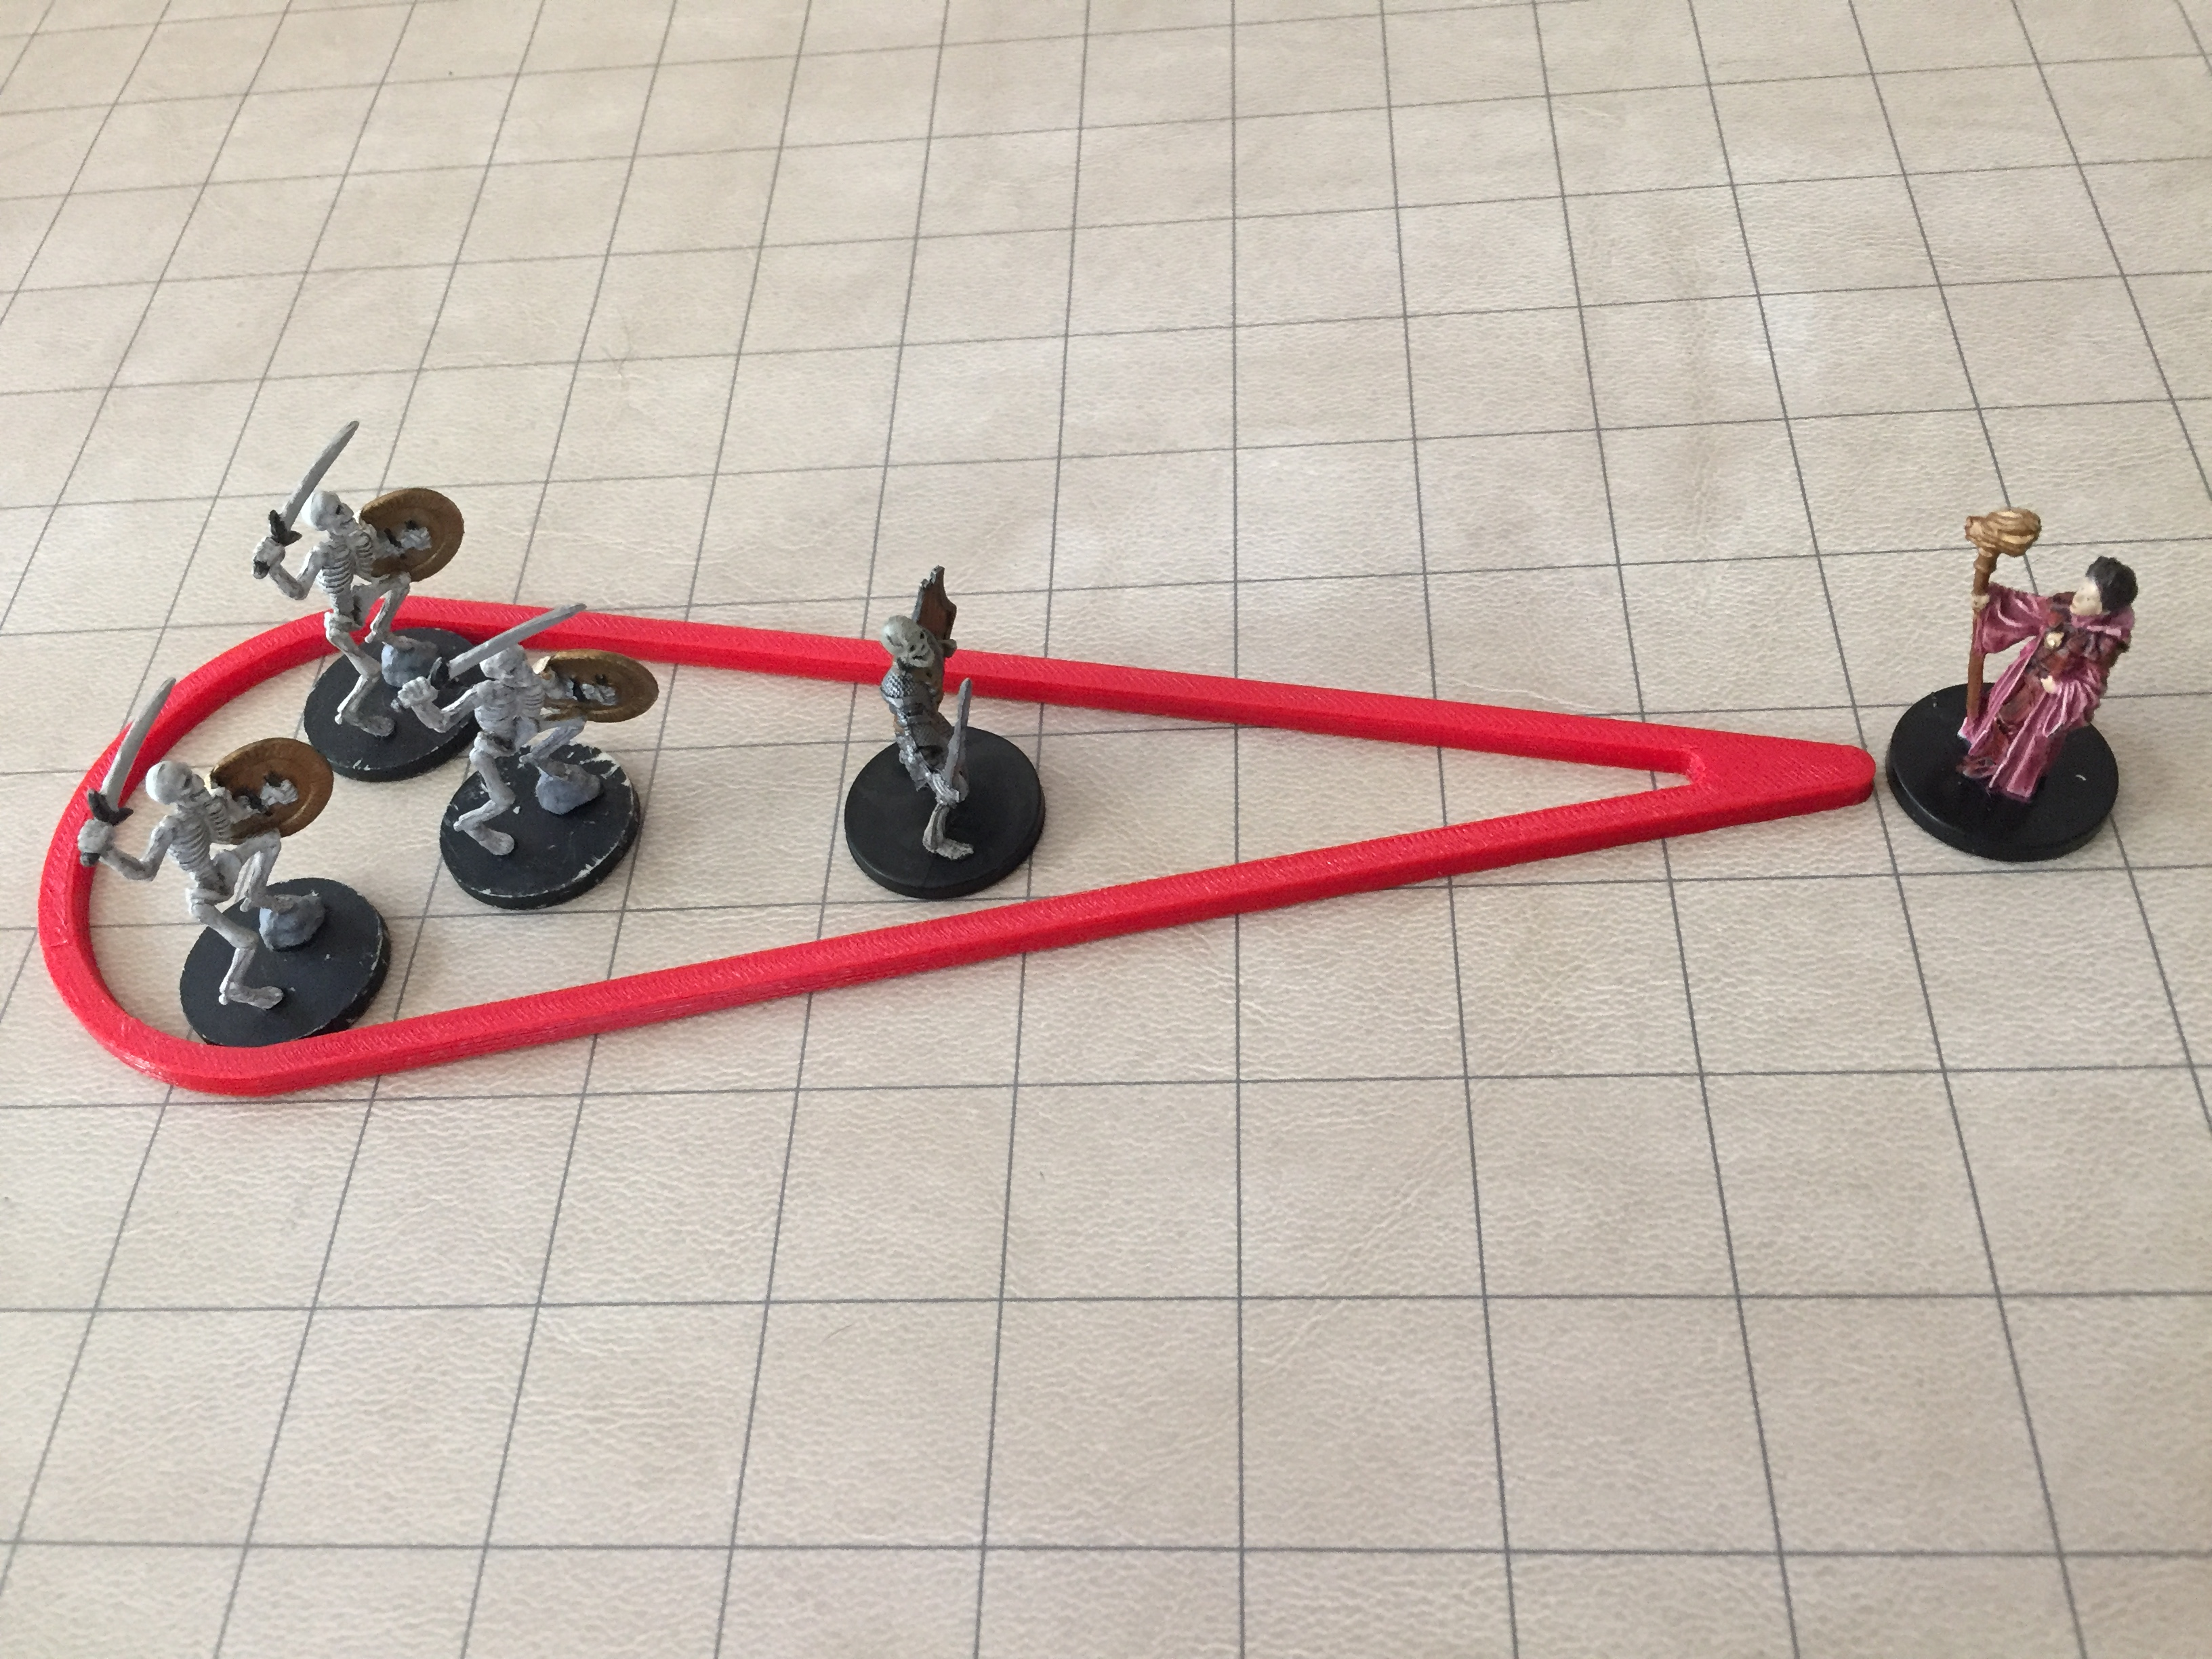 Burst templates savage worlds tabletop rpg by drelen thingiverse burst templates savage worlds tabletop rpg by drelen oct 22 2016 view original maxwellsz